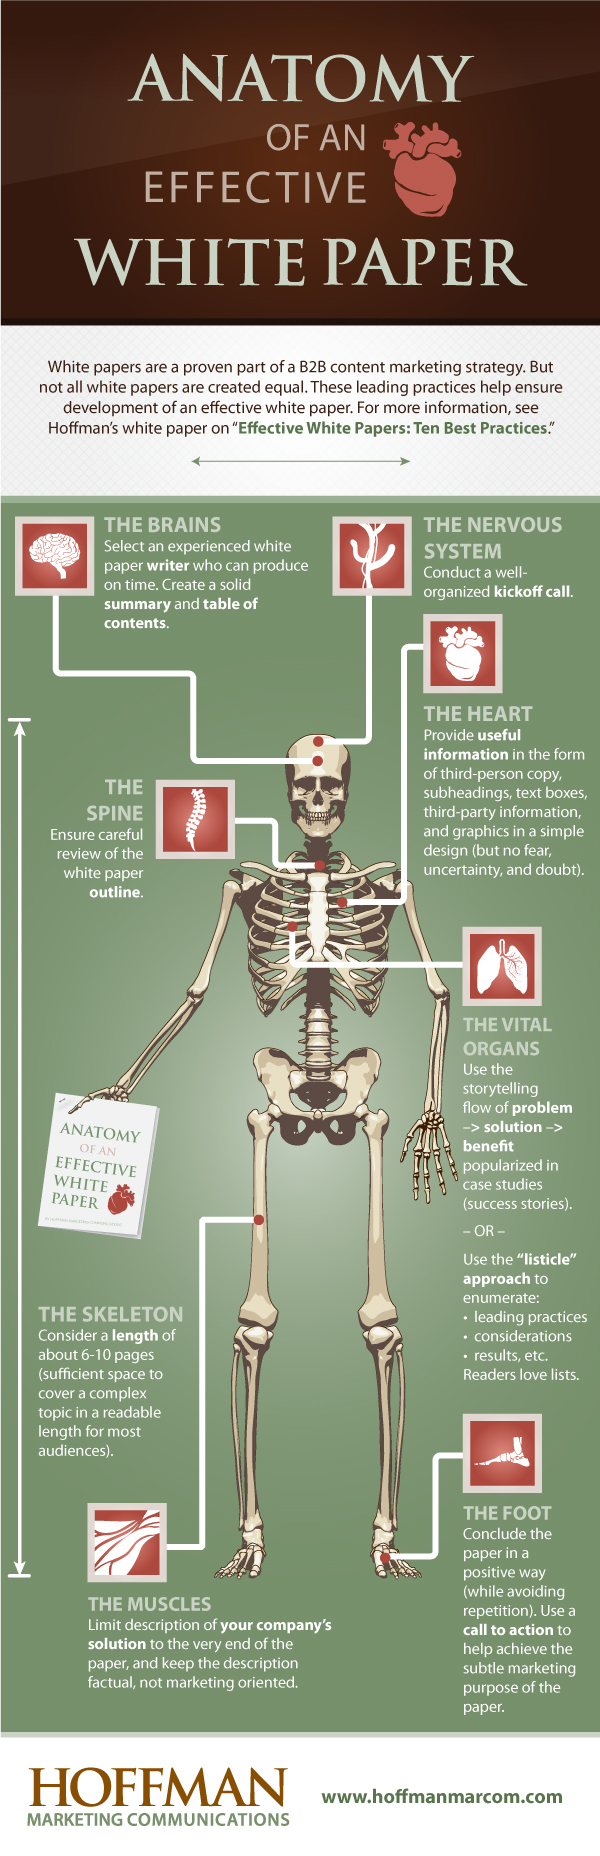 Anatomy of an Effective White Paper Infographic